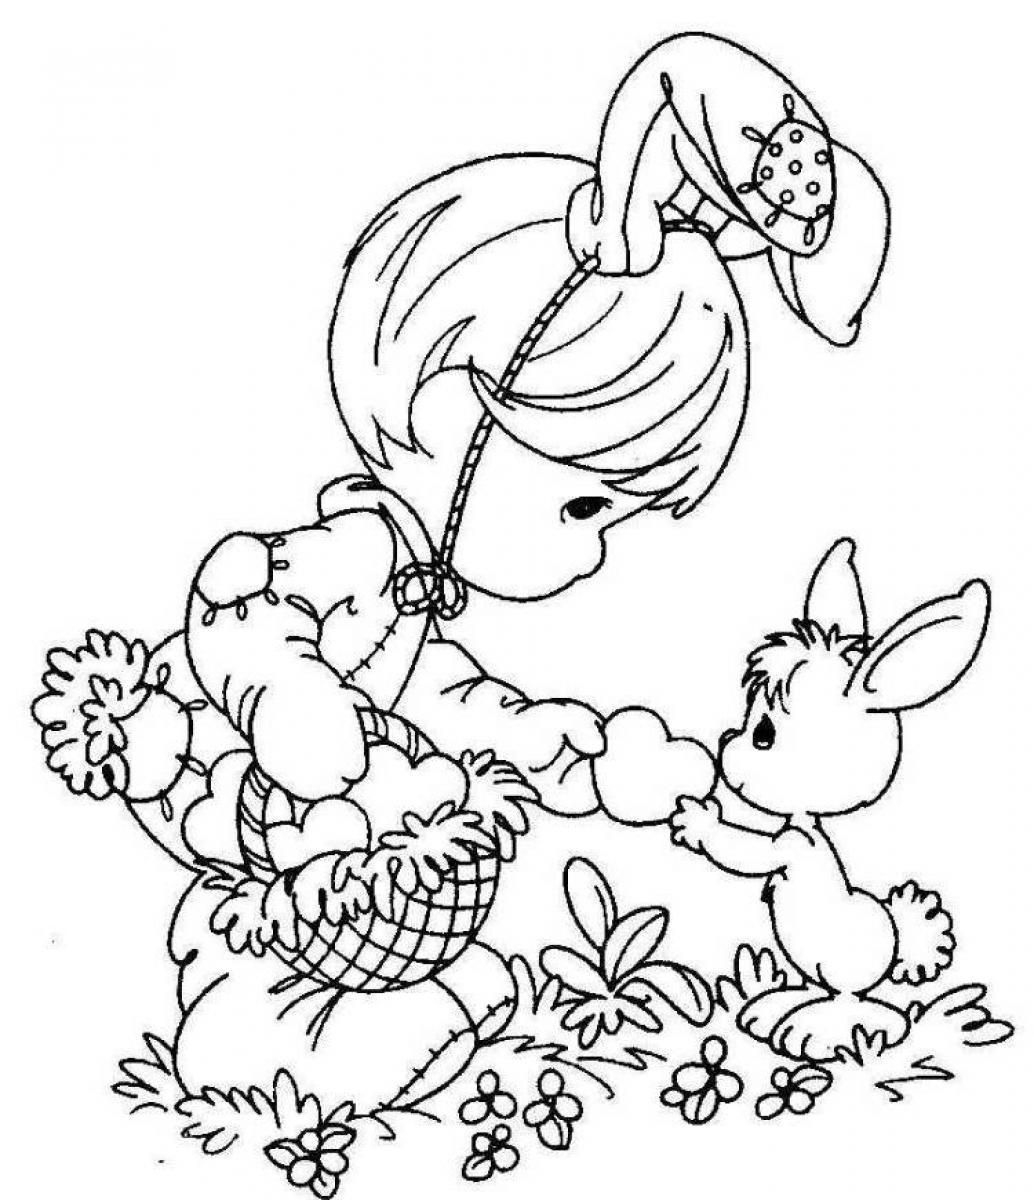 Easter Coloring Pages Free Printable Printables For Girls 1034×1200 - Easter Color Pages Free Printable